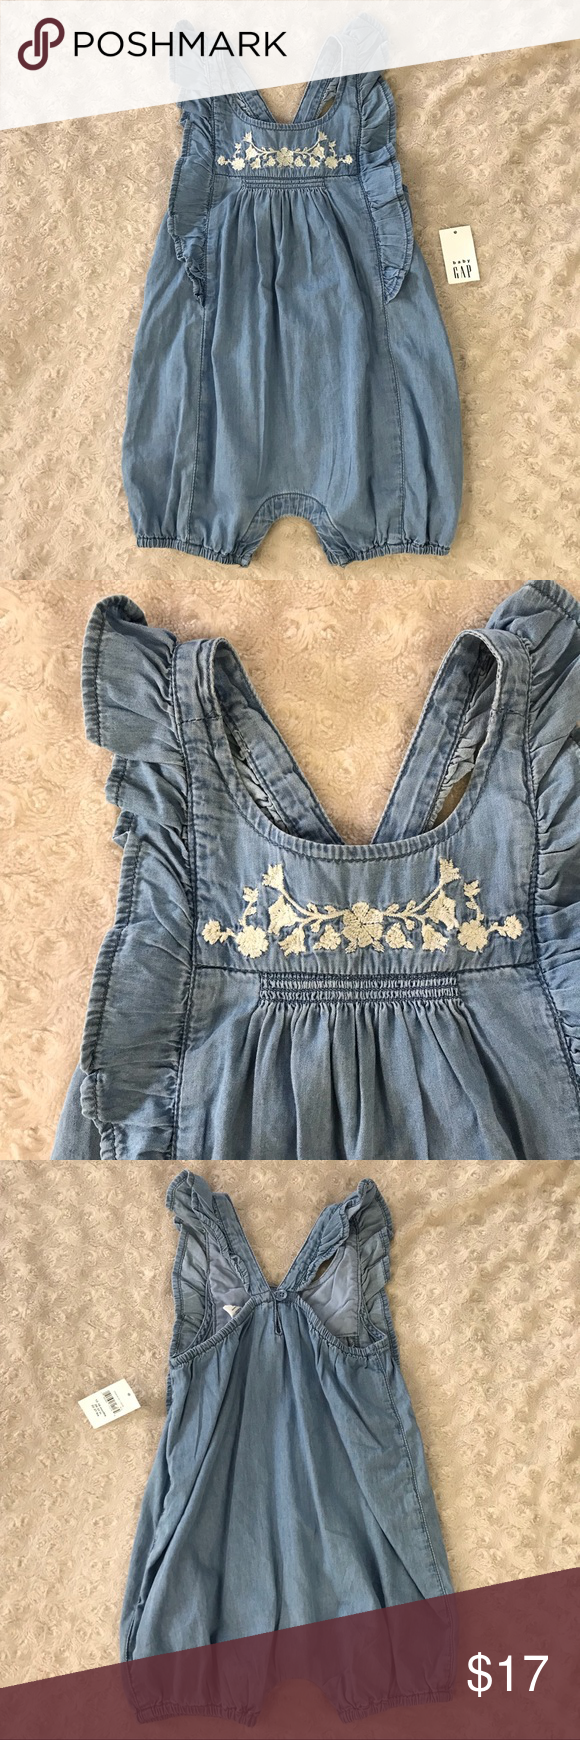 a2ed320add61 Baby Gap Chambray Romper Floral Embroidery Baby Gap Blue Chambray romper  with floral embroidery. Size. Visit. February 2019